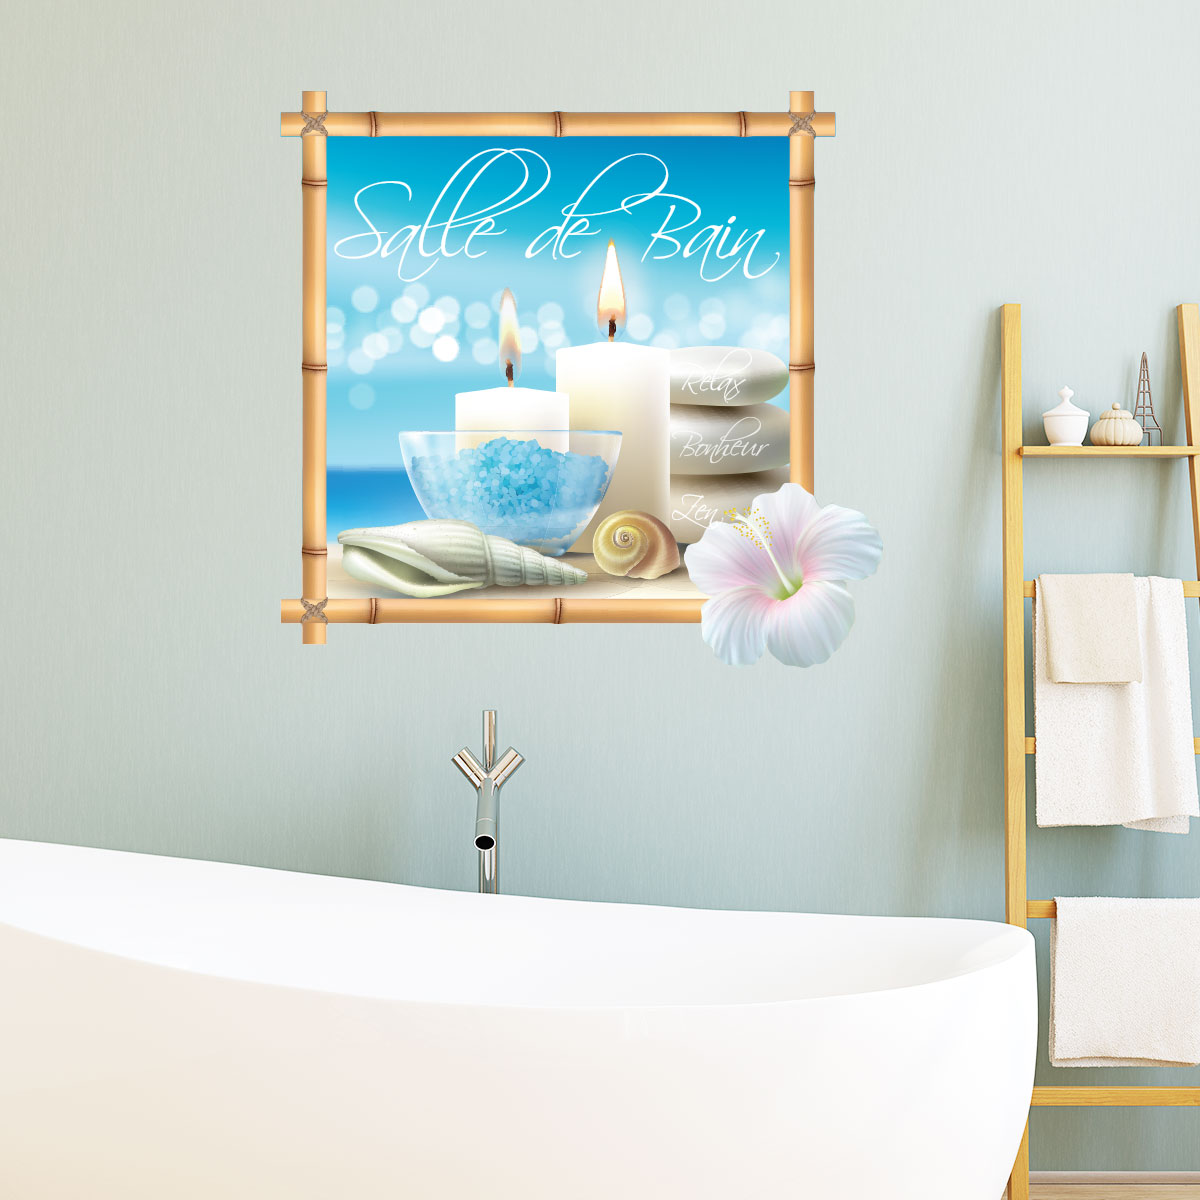 Sticker porte salle de bain plage zen stickers nature for Sticker porte plage